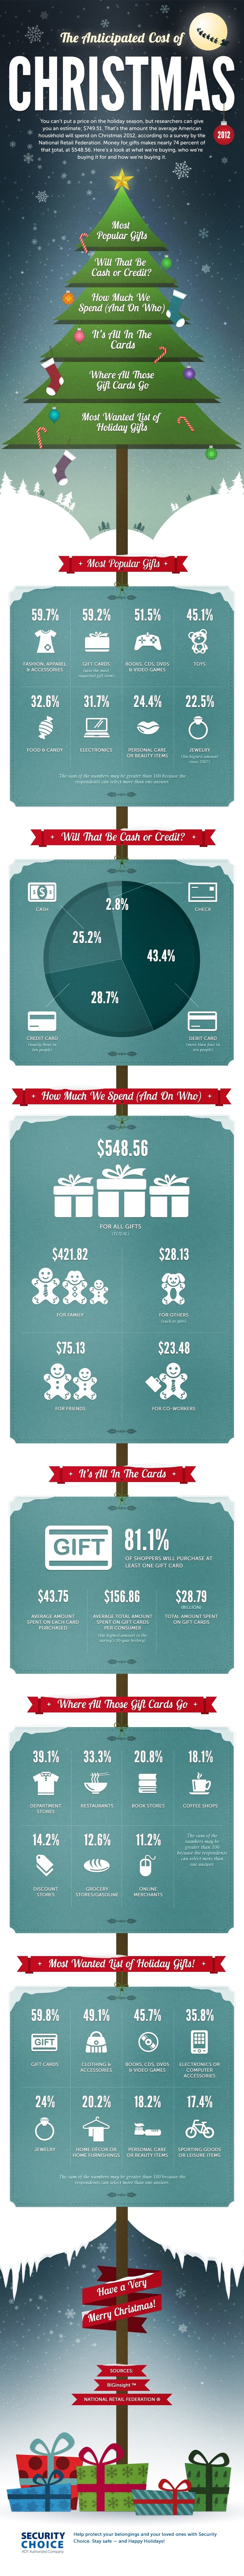 How Americans are Spending Christmas Celebration with Fun | All Infographics | Machinimania | Scoop.it